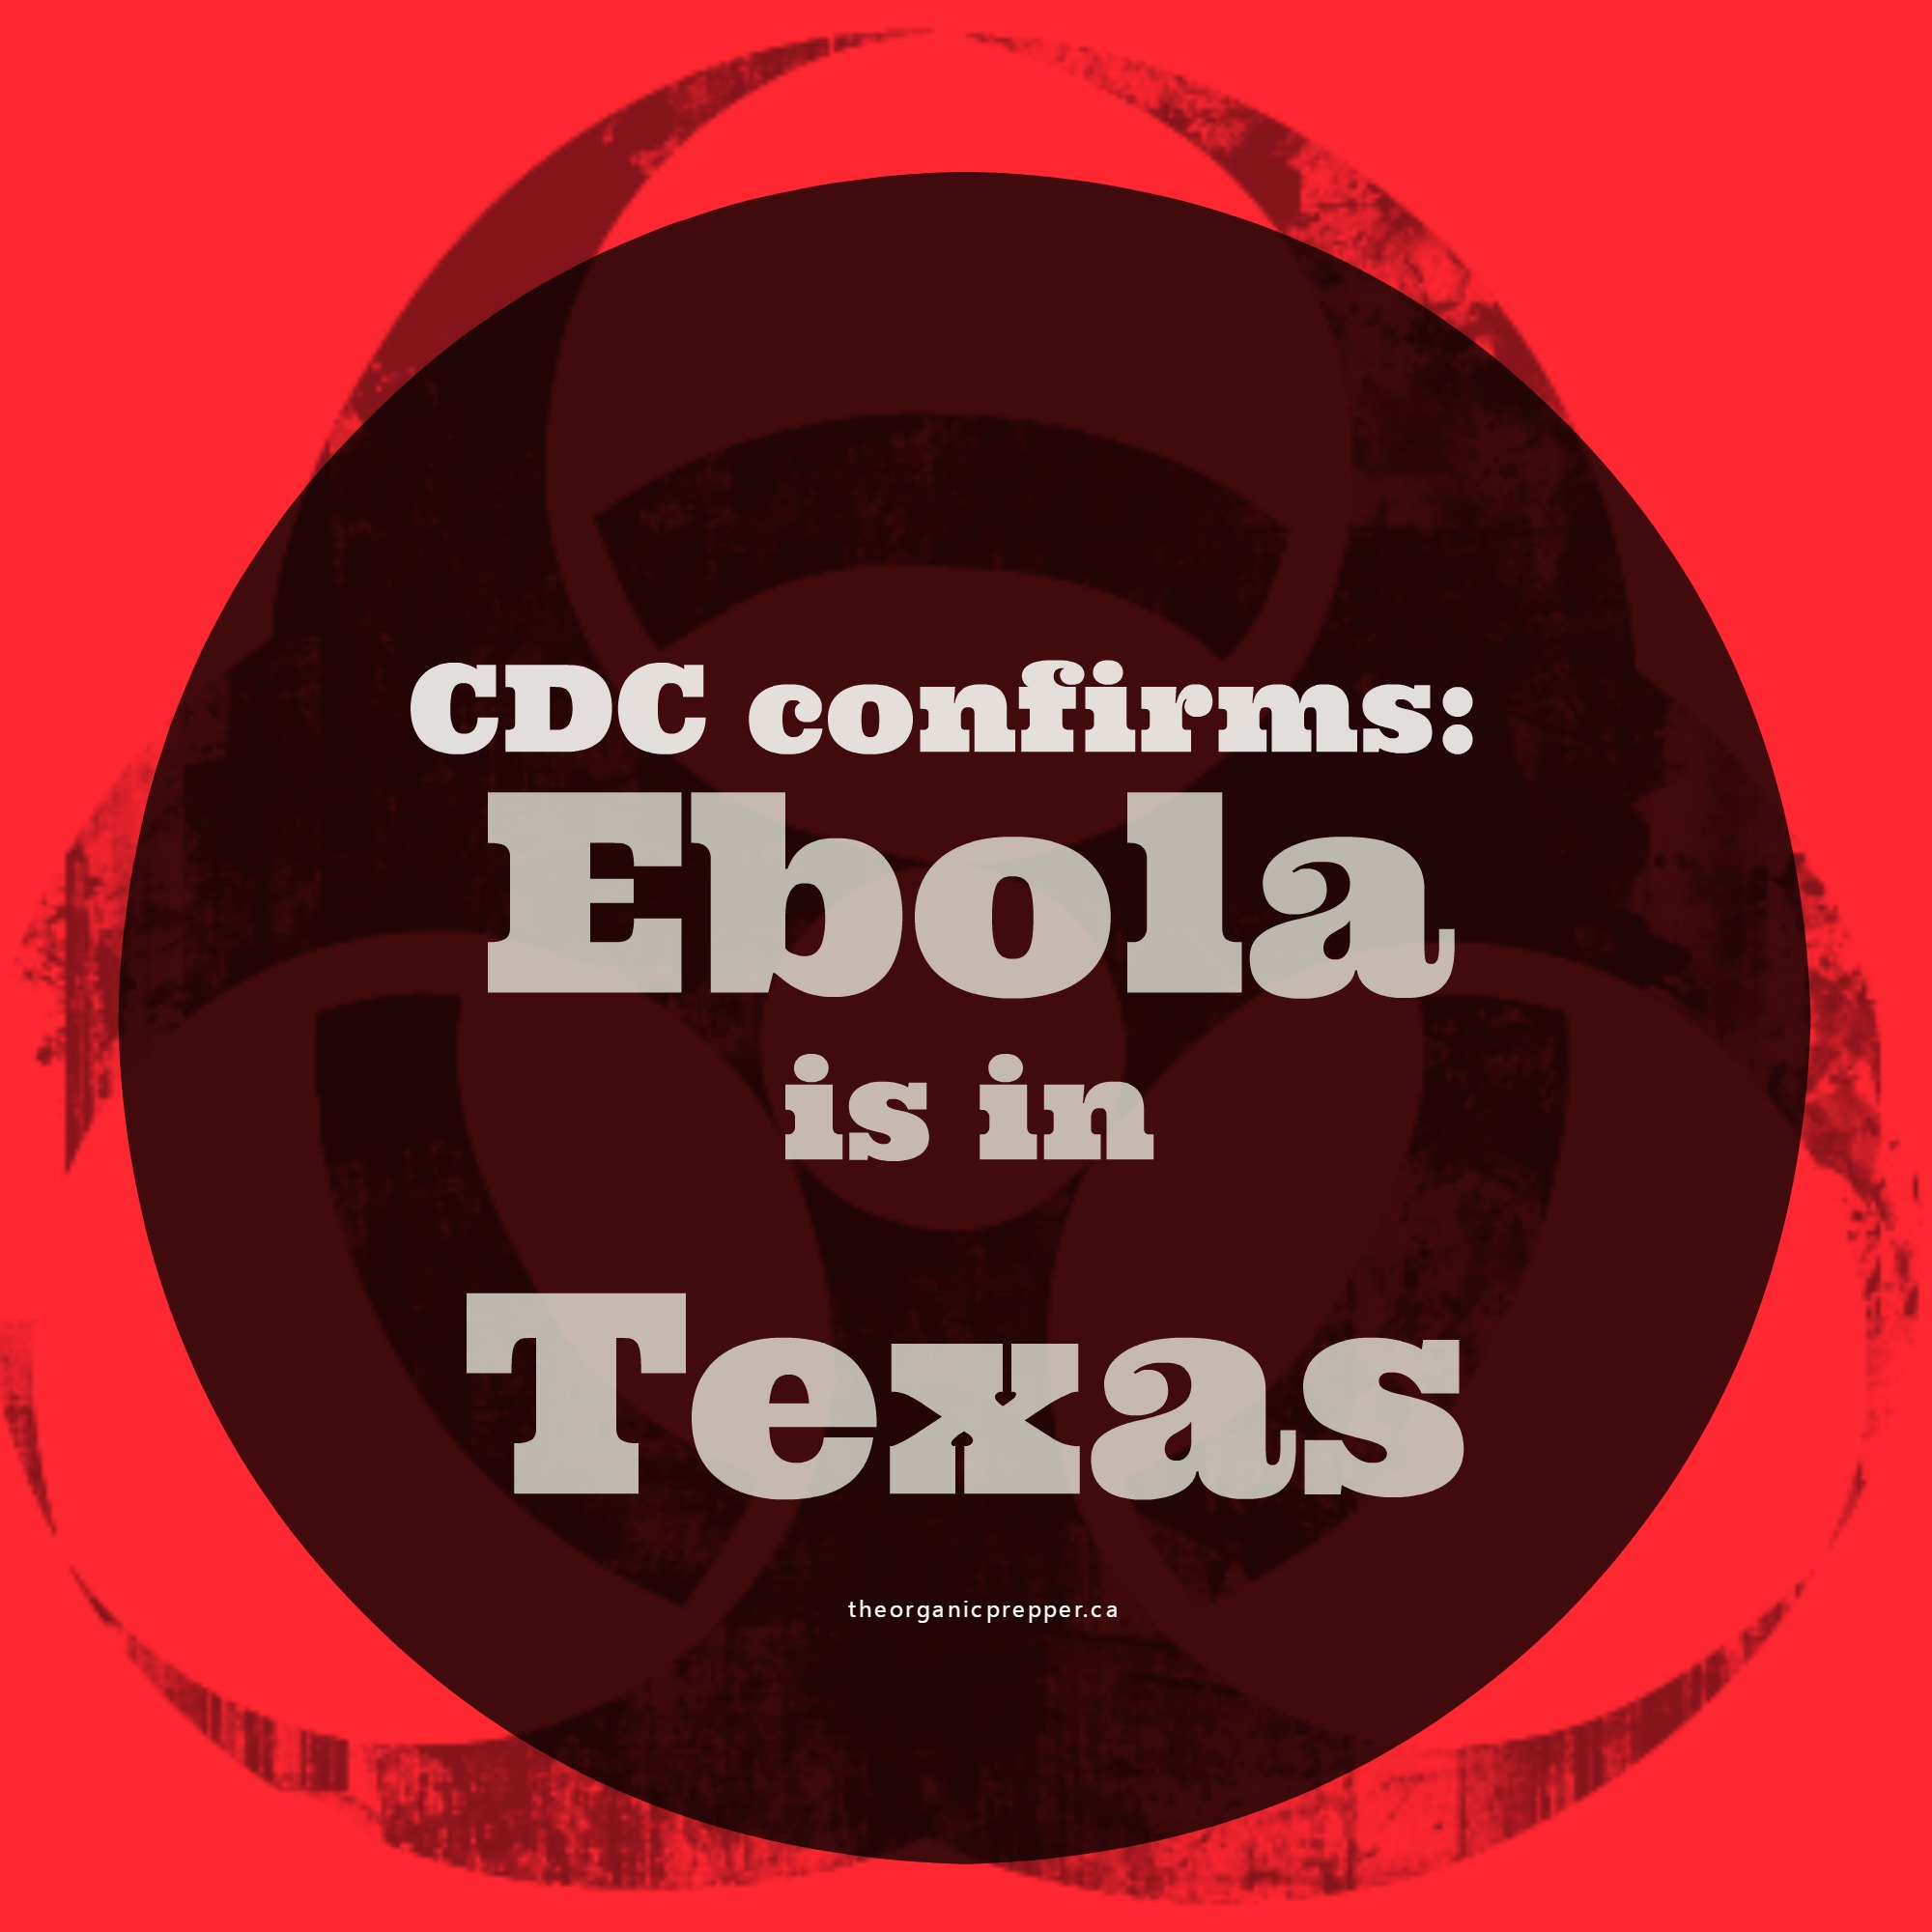 http://www.theorganicprepper.ca/wp-content/uploads/2014/09/Ebola-is-in-Texas.jpg